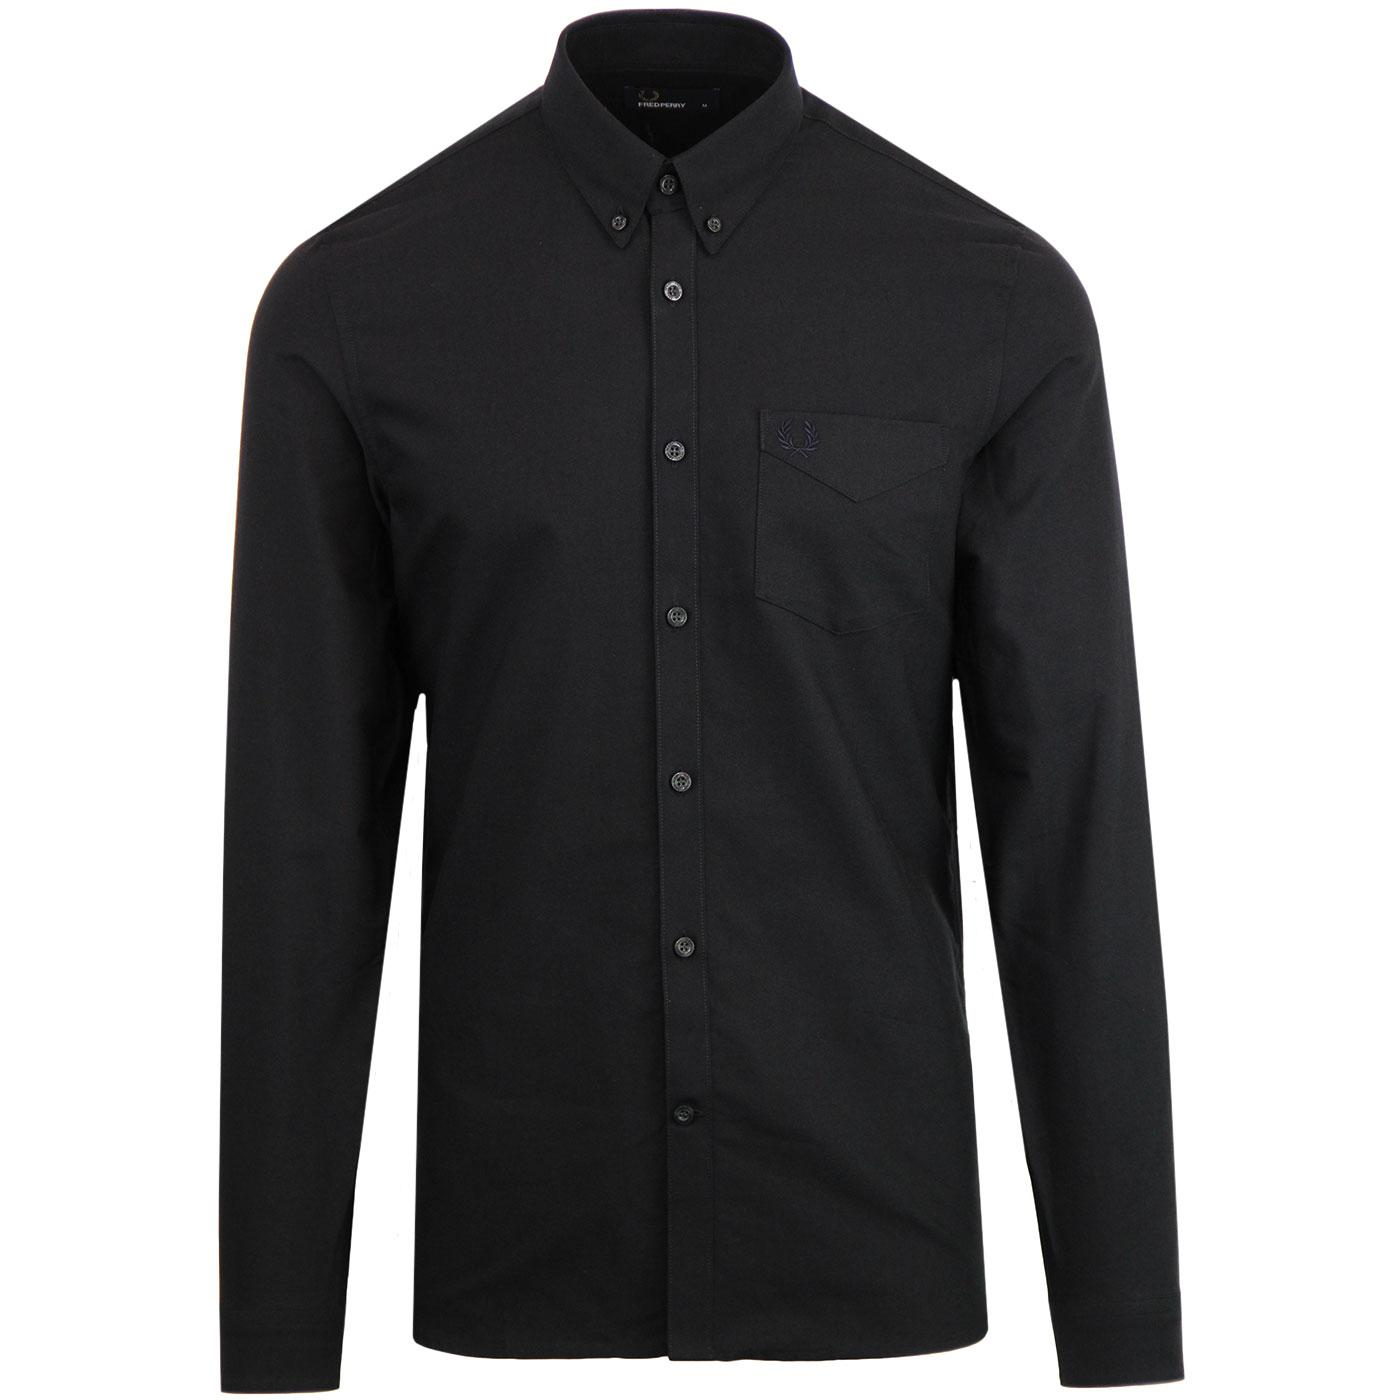 FRED PERRY Men's Classic Mod Oxford Shirt (Black)